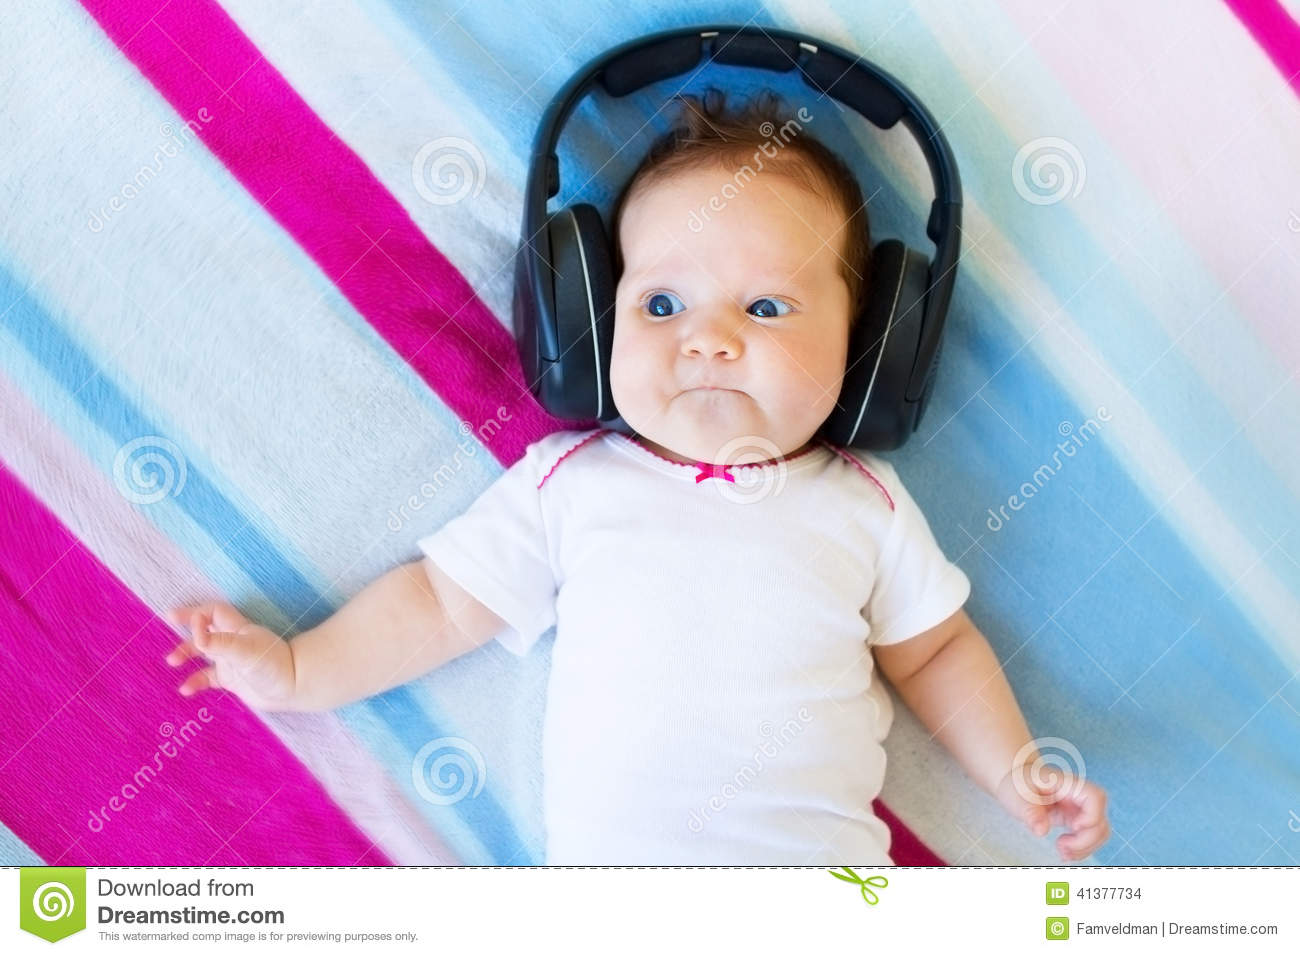 Funny Laughing Newborn Baby Listening Ear Phones Stock Photo - Image